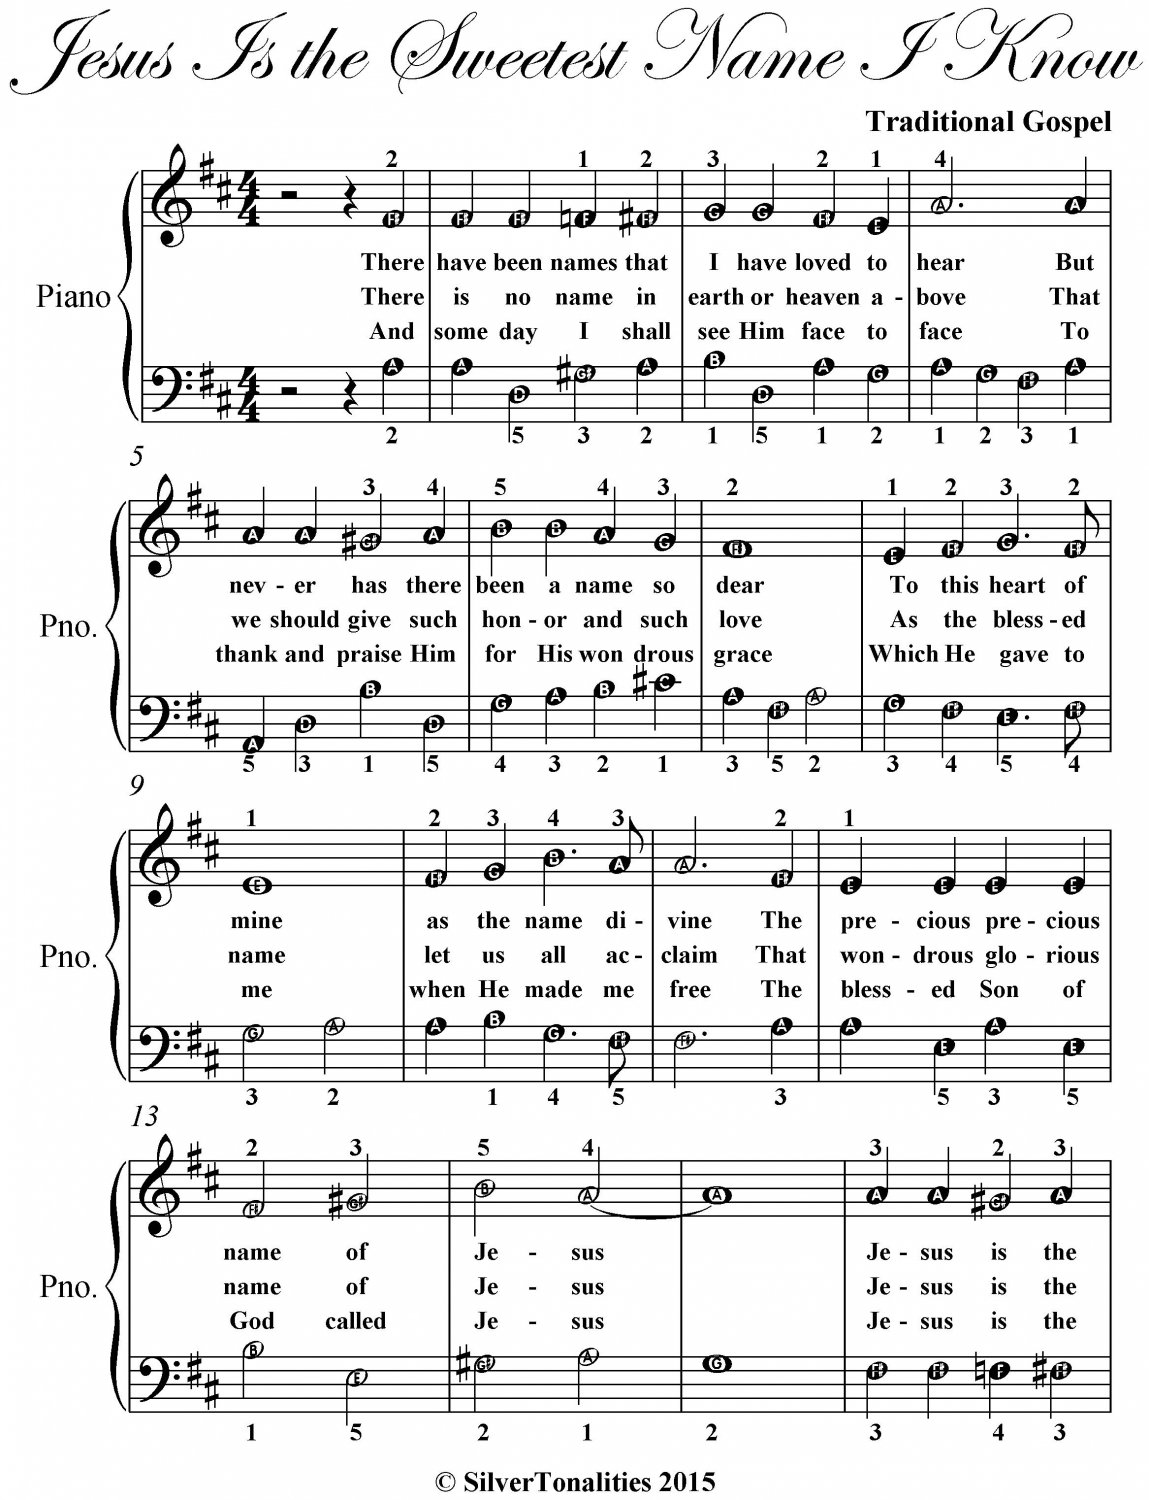 Jesus Is the Sweetest Name I Know Easy Piano Sheet Music